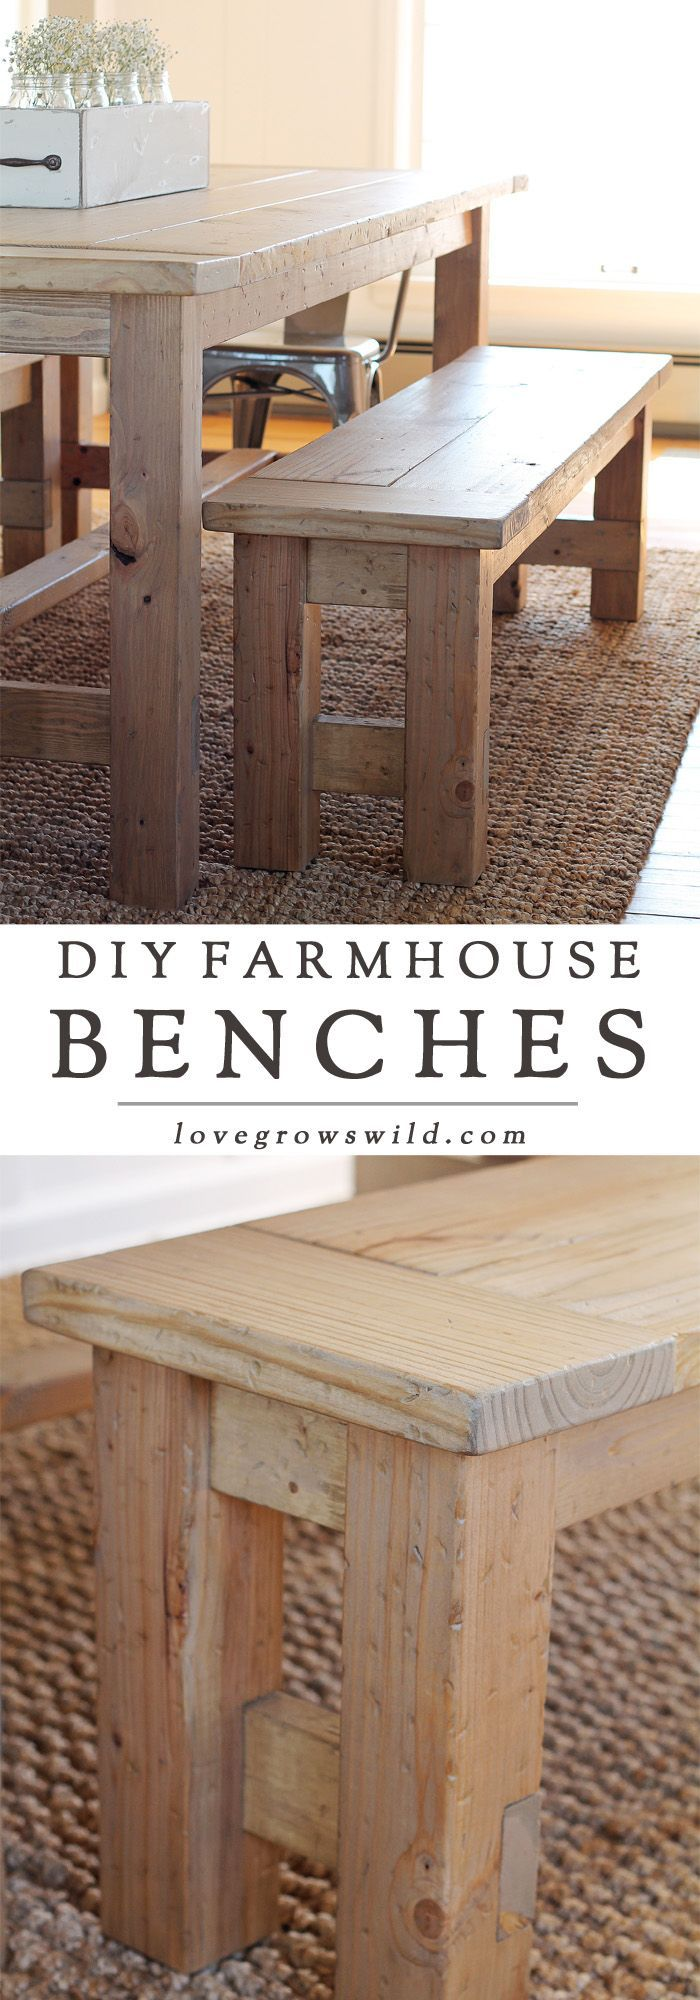 tufted dining bench with back learn how to build an easy diy farmhouse bench perfect for saving space in a